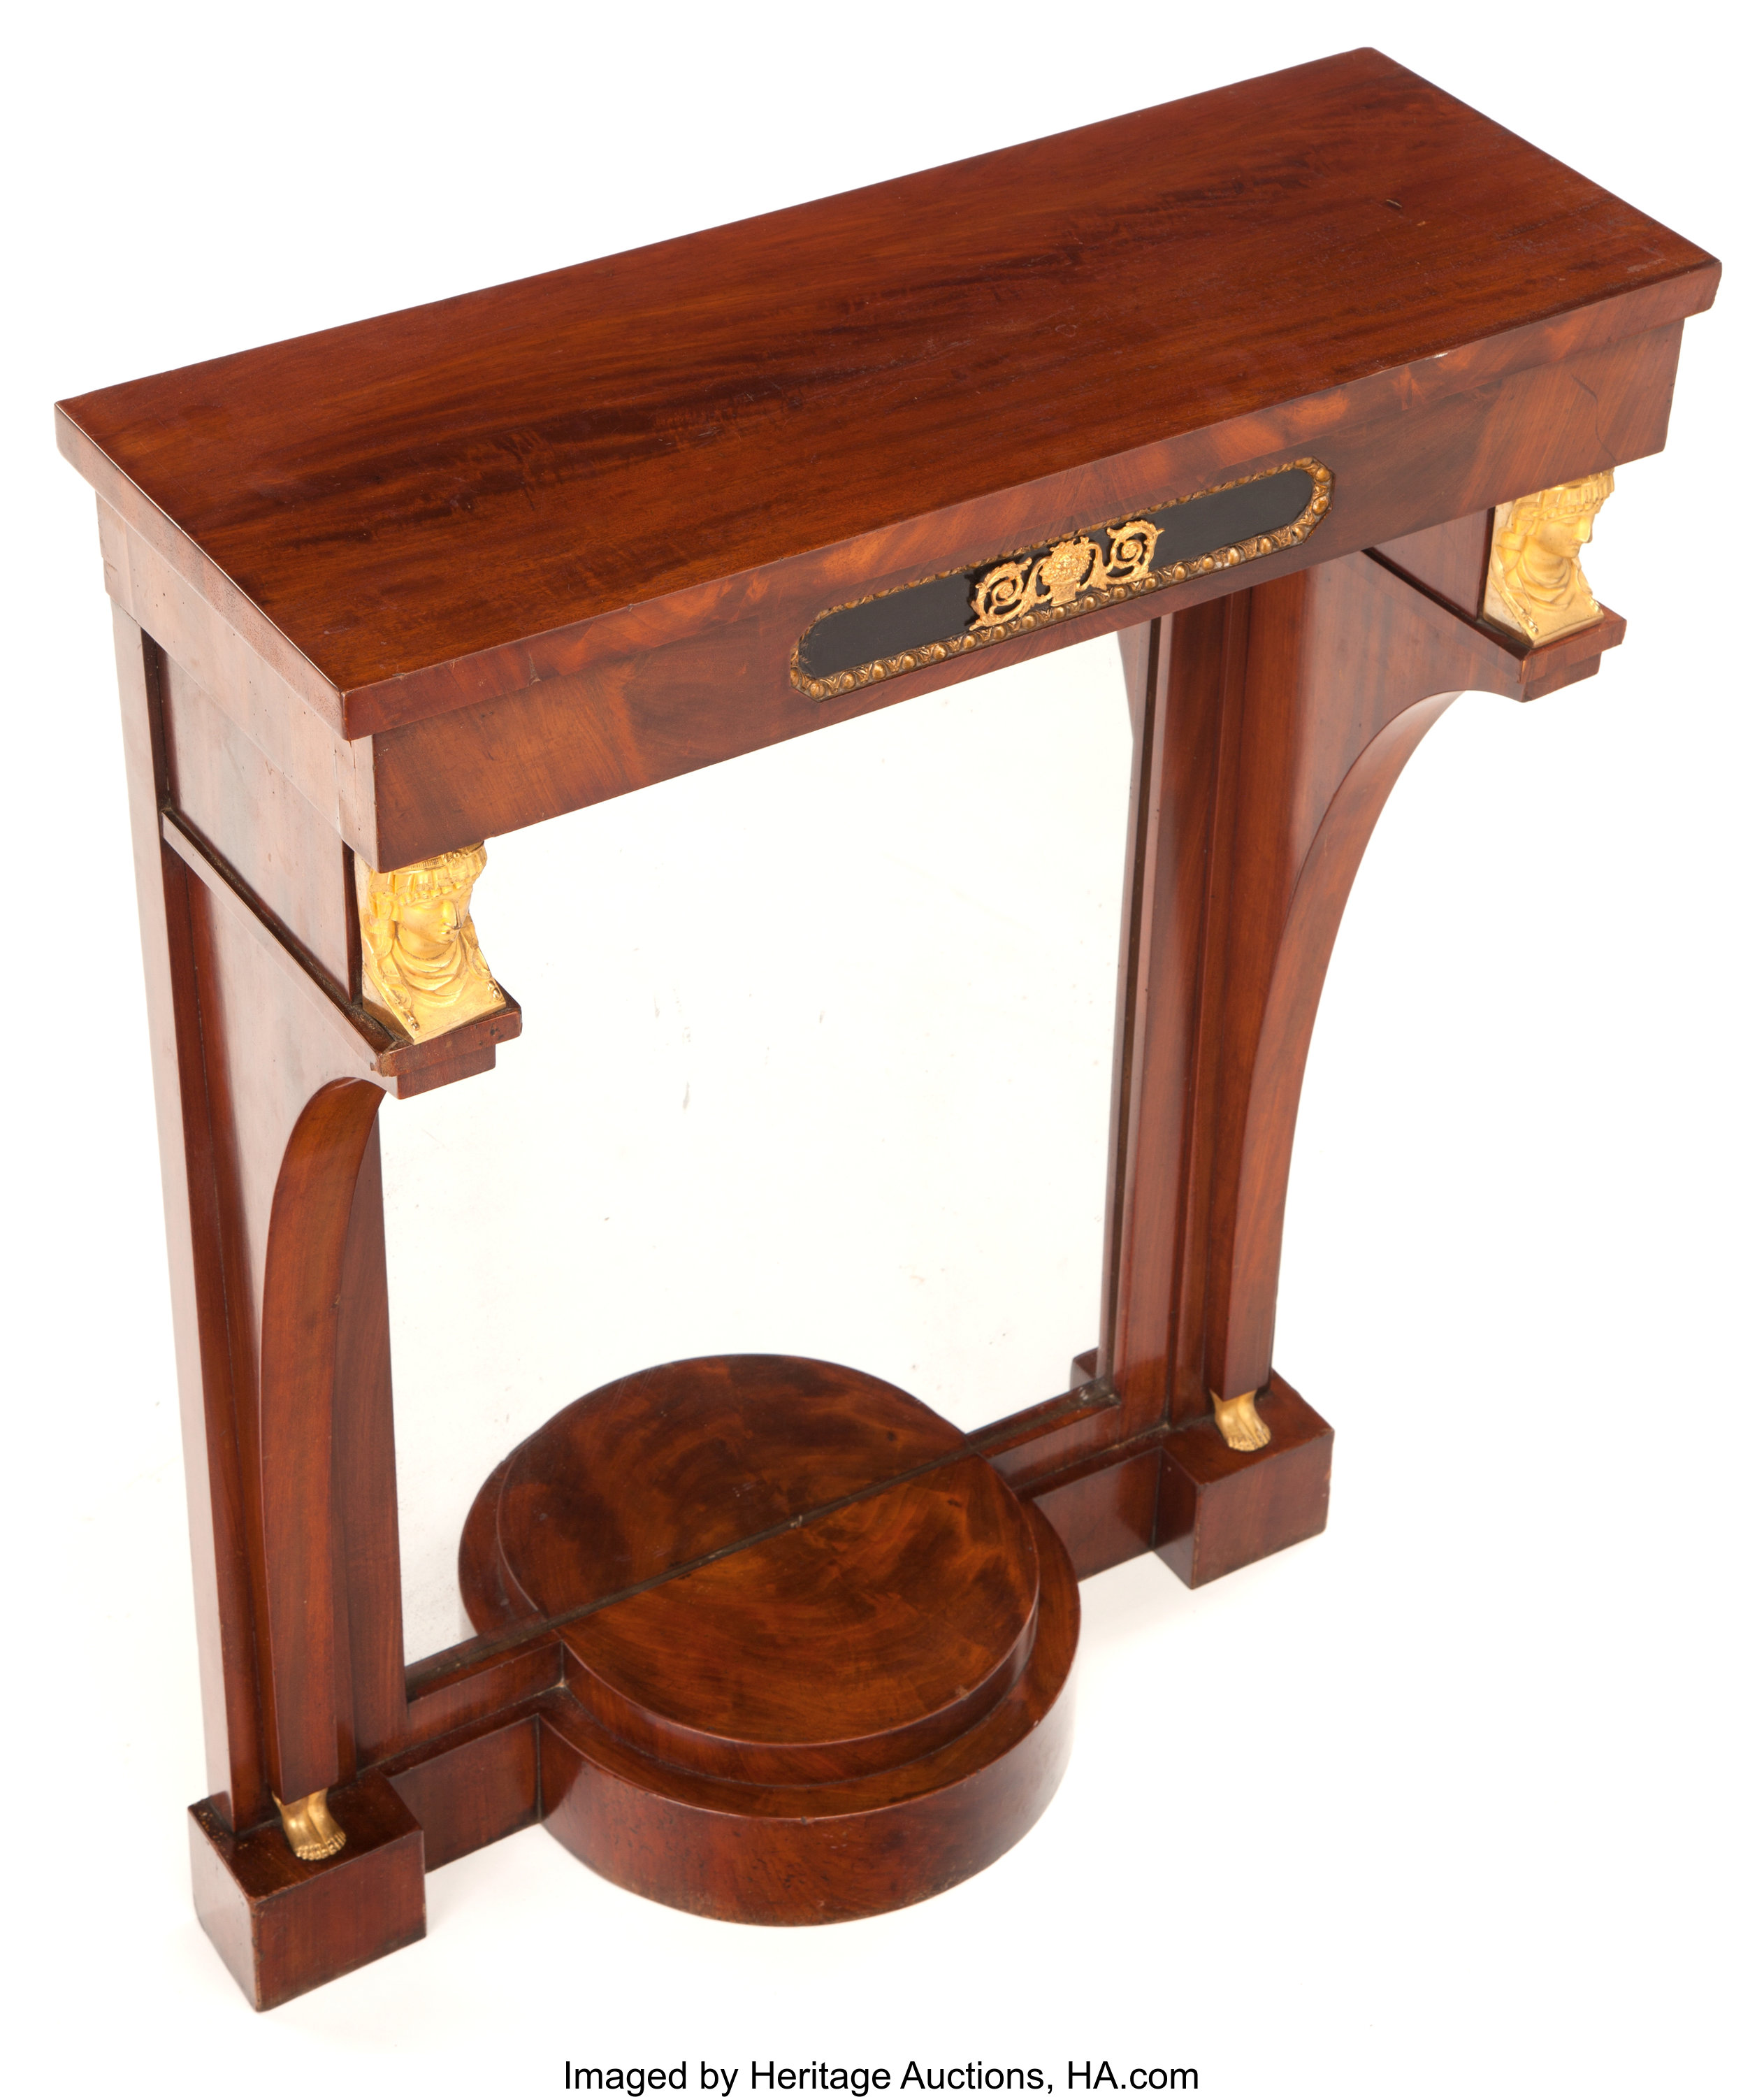 Pleasing A French Empire Style Mahogany And Gilt Bronze Console Table Pabps2019 Chair Design Images Pabps2019Com